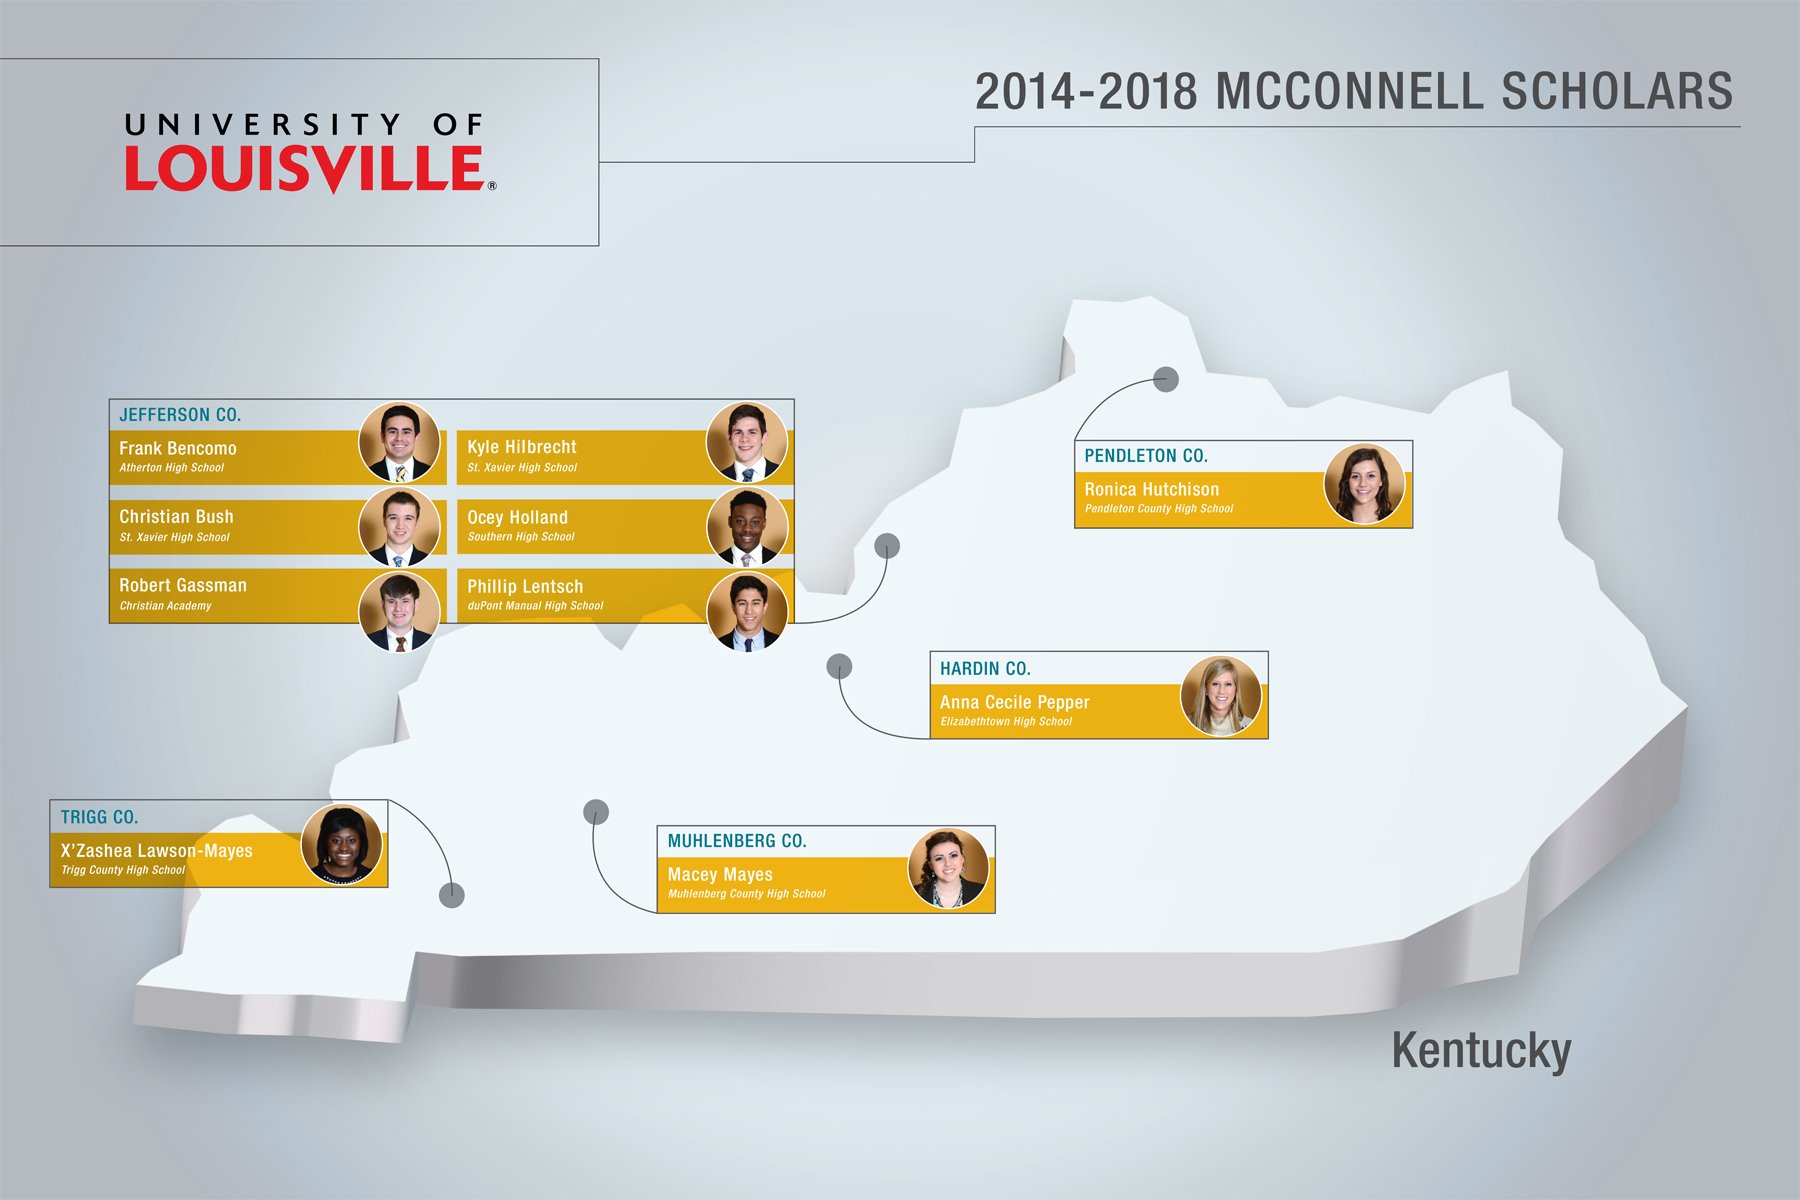 McConnell Center welcomes 10 new McConnell Scholars